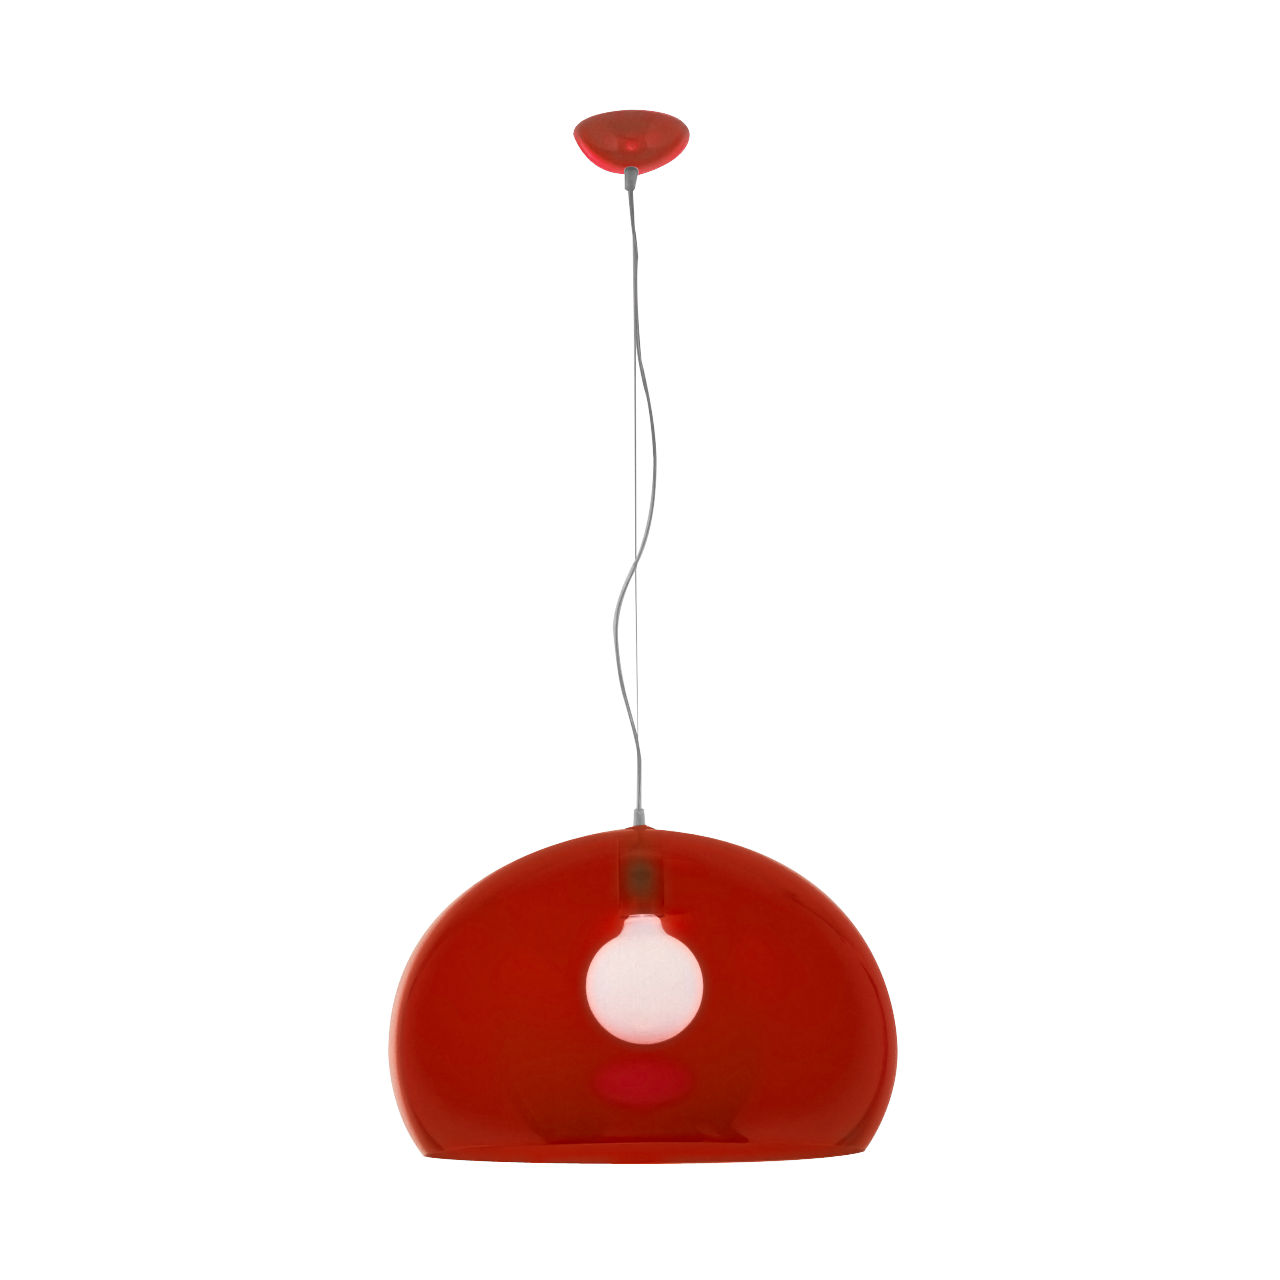 FLY Hanging Lamp in Scarlet Red by Kartell